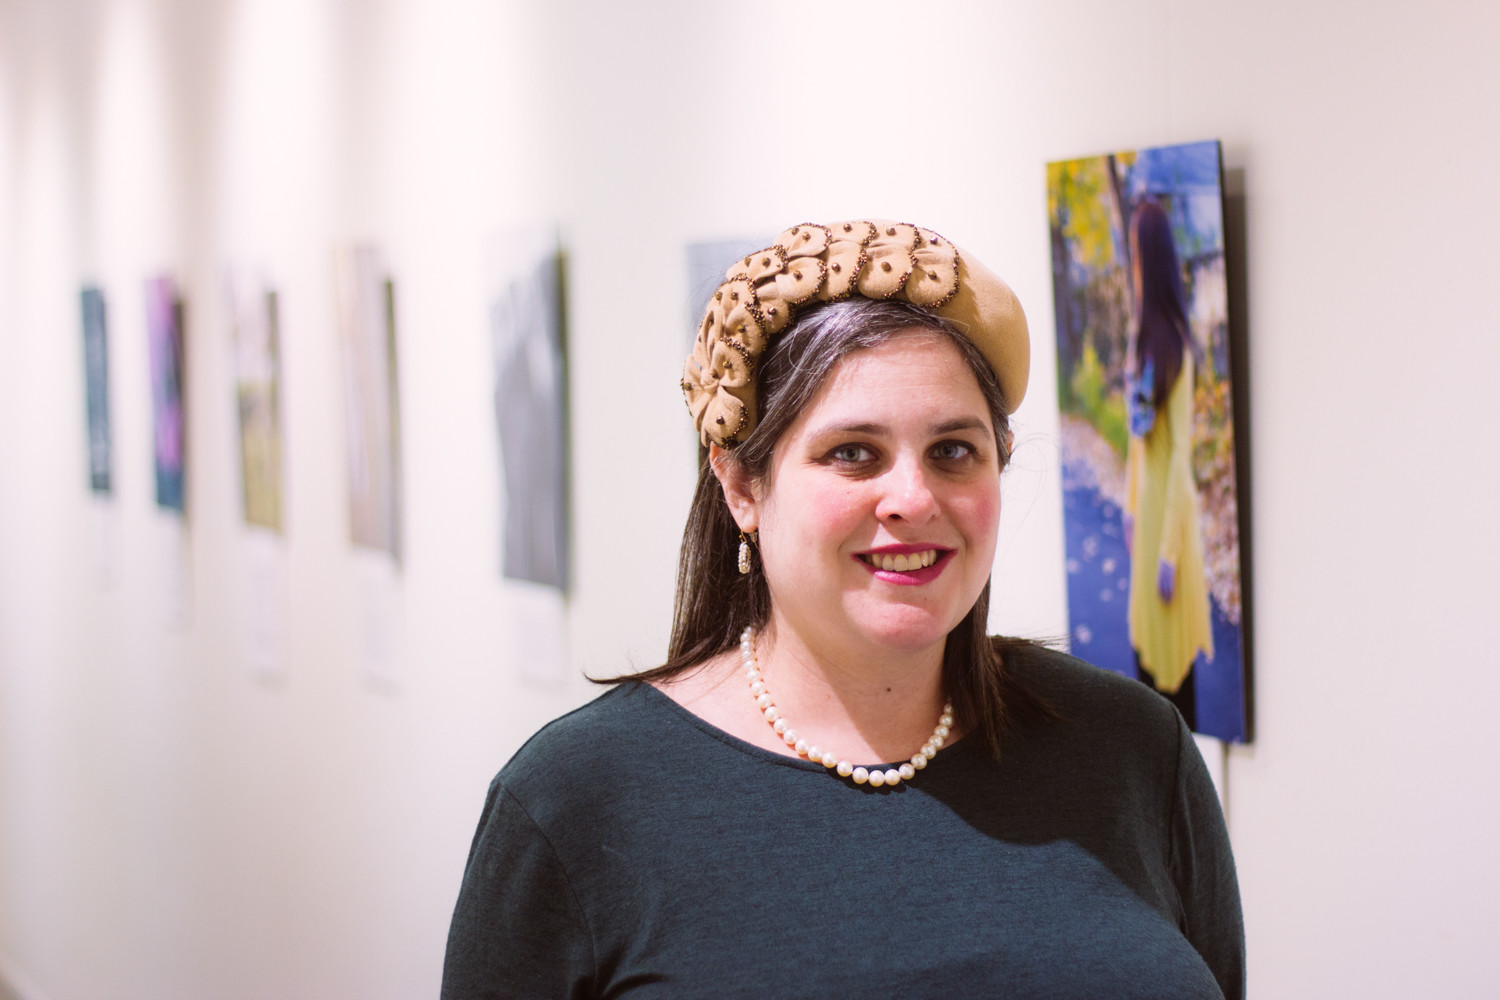 Aviva Braun works as a psychotherapist, and her patients often deal with body image and eating issues. Her photo exhibition at The Riverdale Y explores women's relationship with their bodies at every decade of life.